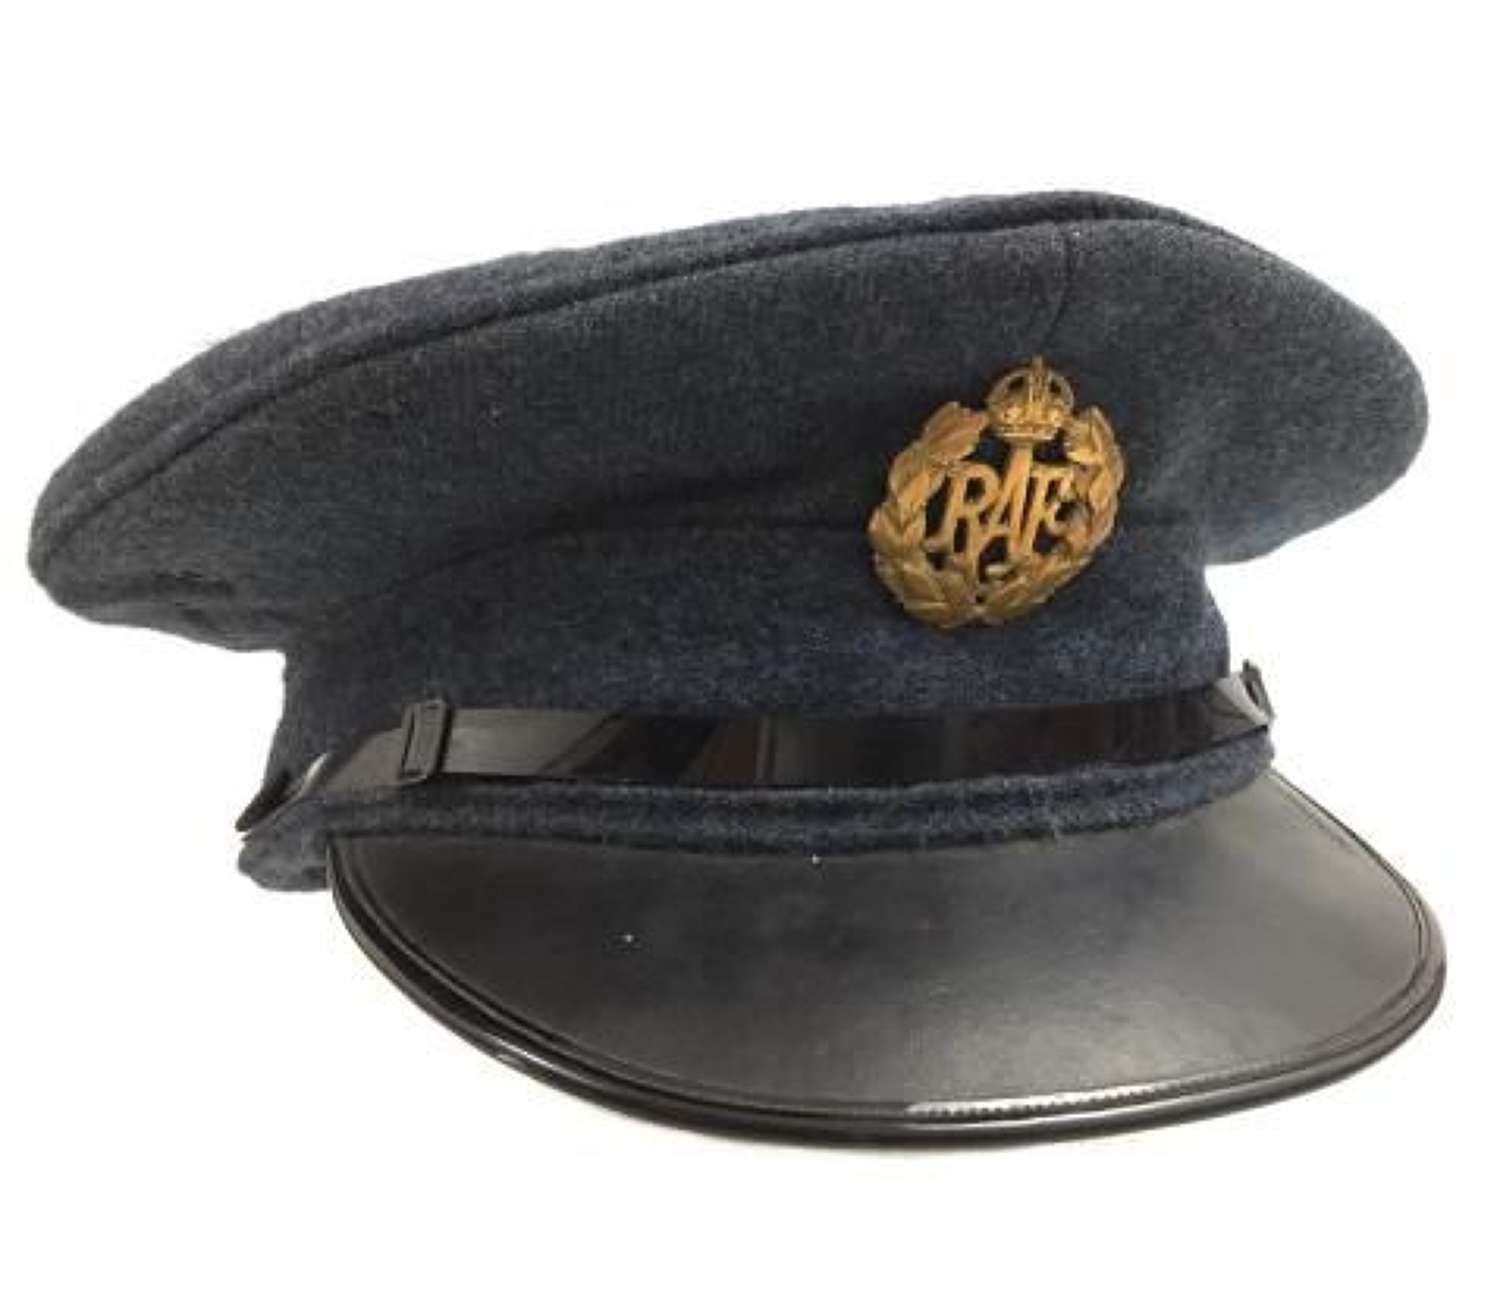 1953 Dated RAF Ordinary Airman's Peaked Cap - Size 7